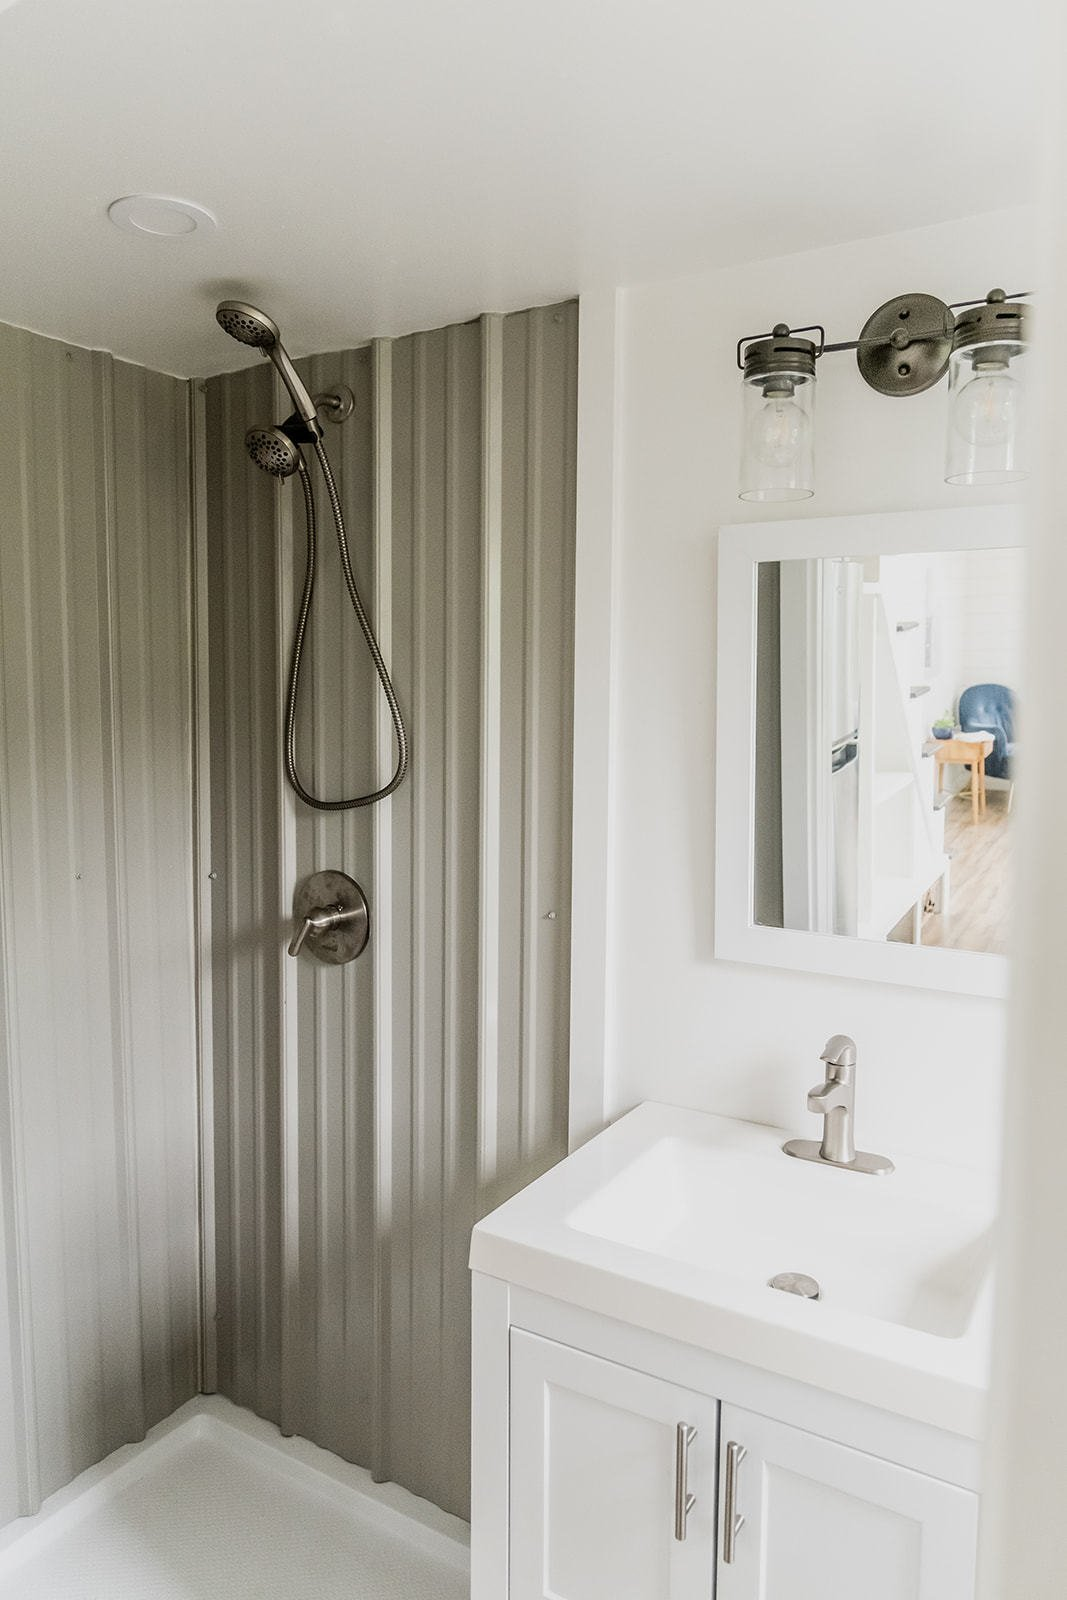 Bath Room, Granite Counter, Vessel Sink, Open Shower, Wall Mount Sink, Ceiling Lighting, and Recessed Lighting At the rear of the home, the bathroom offers a 42-inch-wide shower, as well as a central vanity and toilet.  Photo 10 of 14 in A Hawaii-Based Couple Build a Luminous Tiny House in Just 25 Days